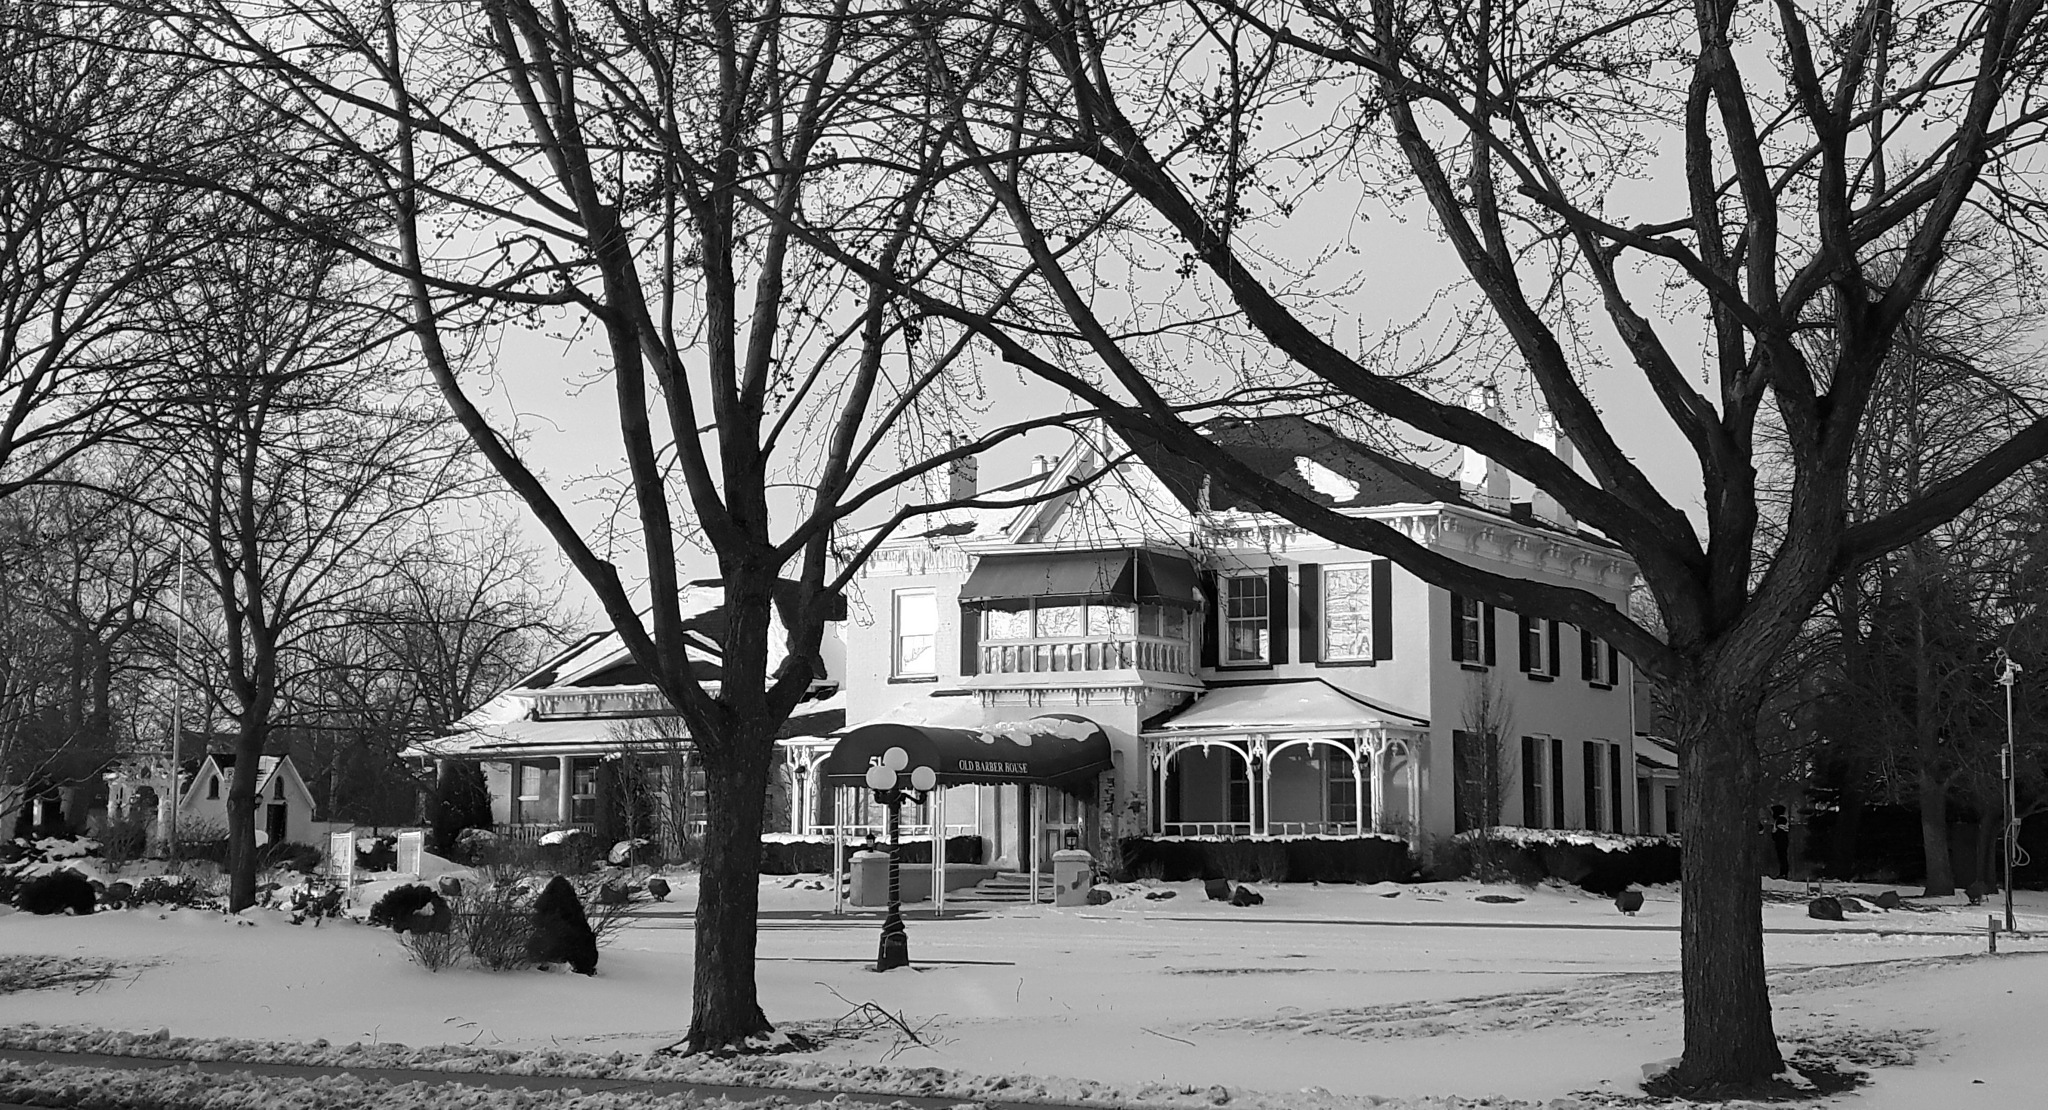 The Barber House In B&W by simonp